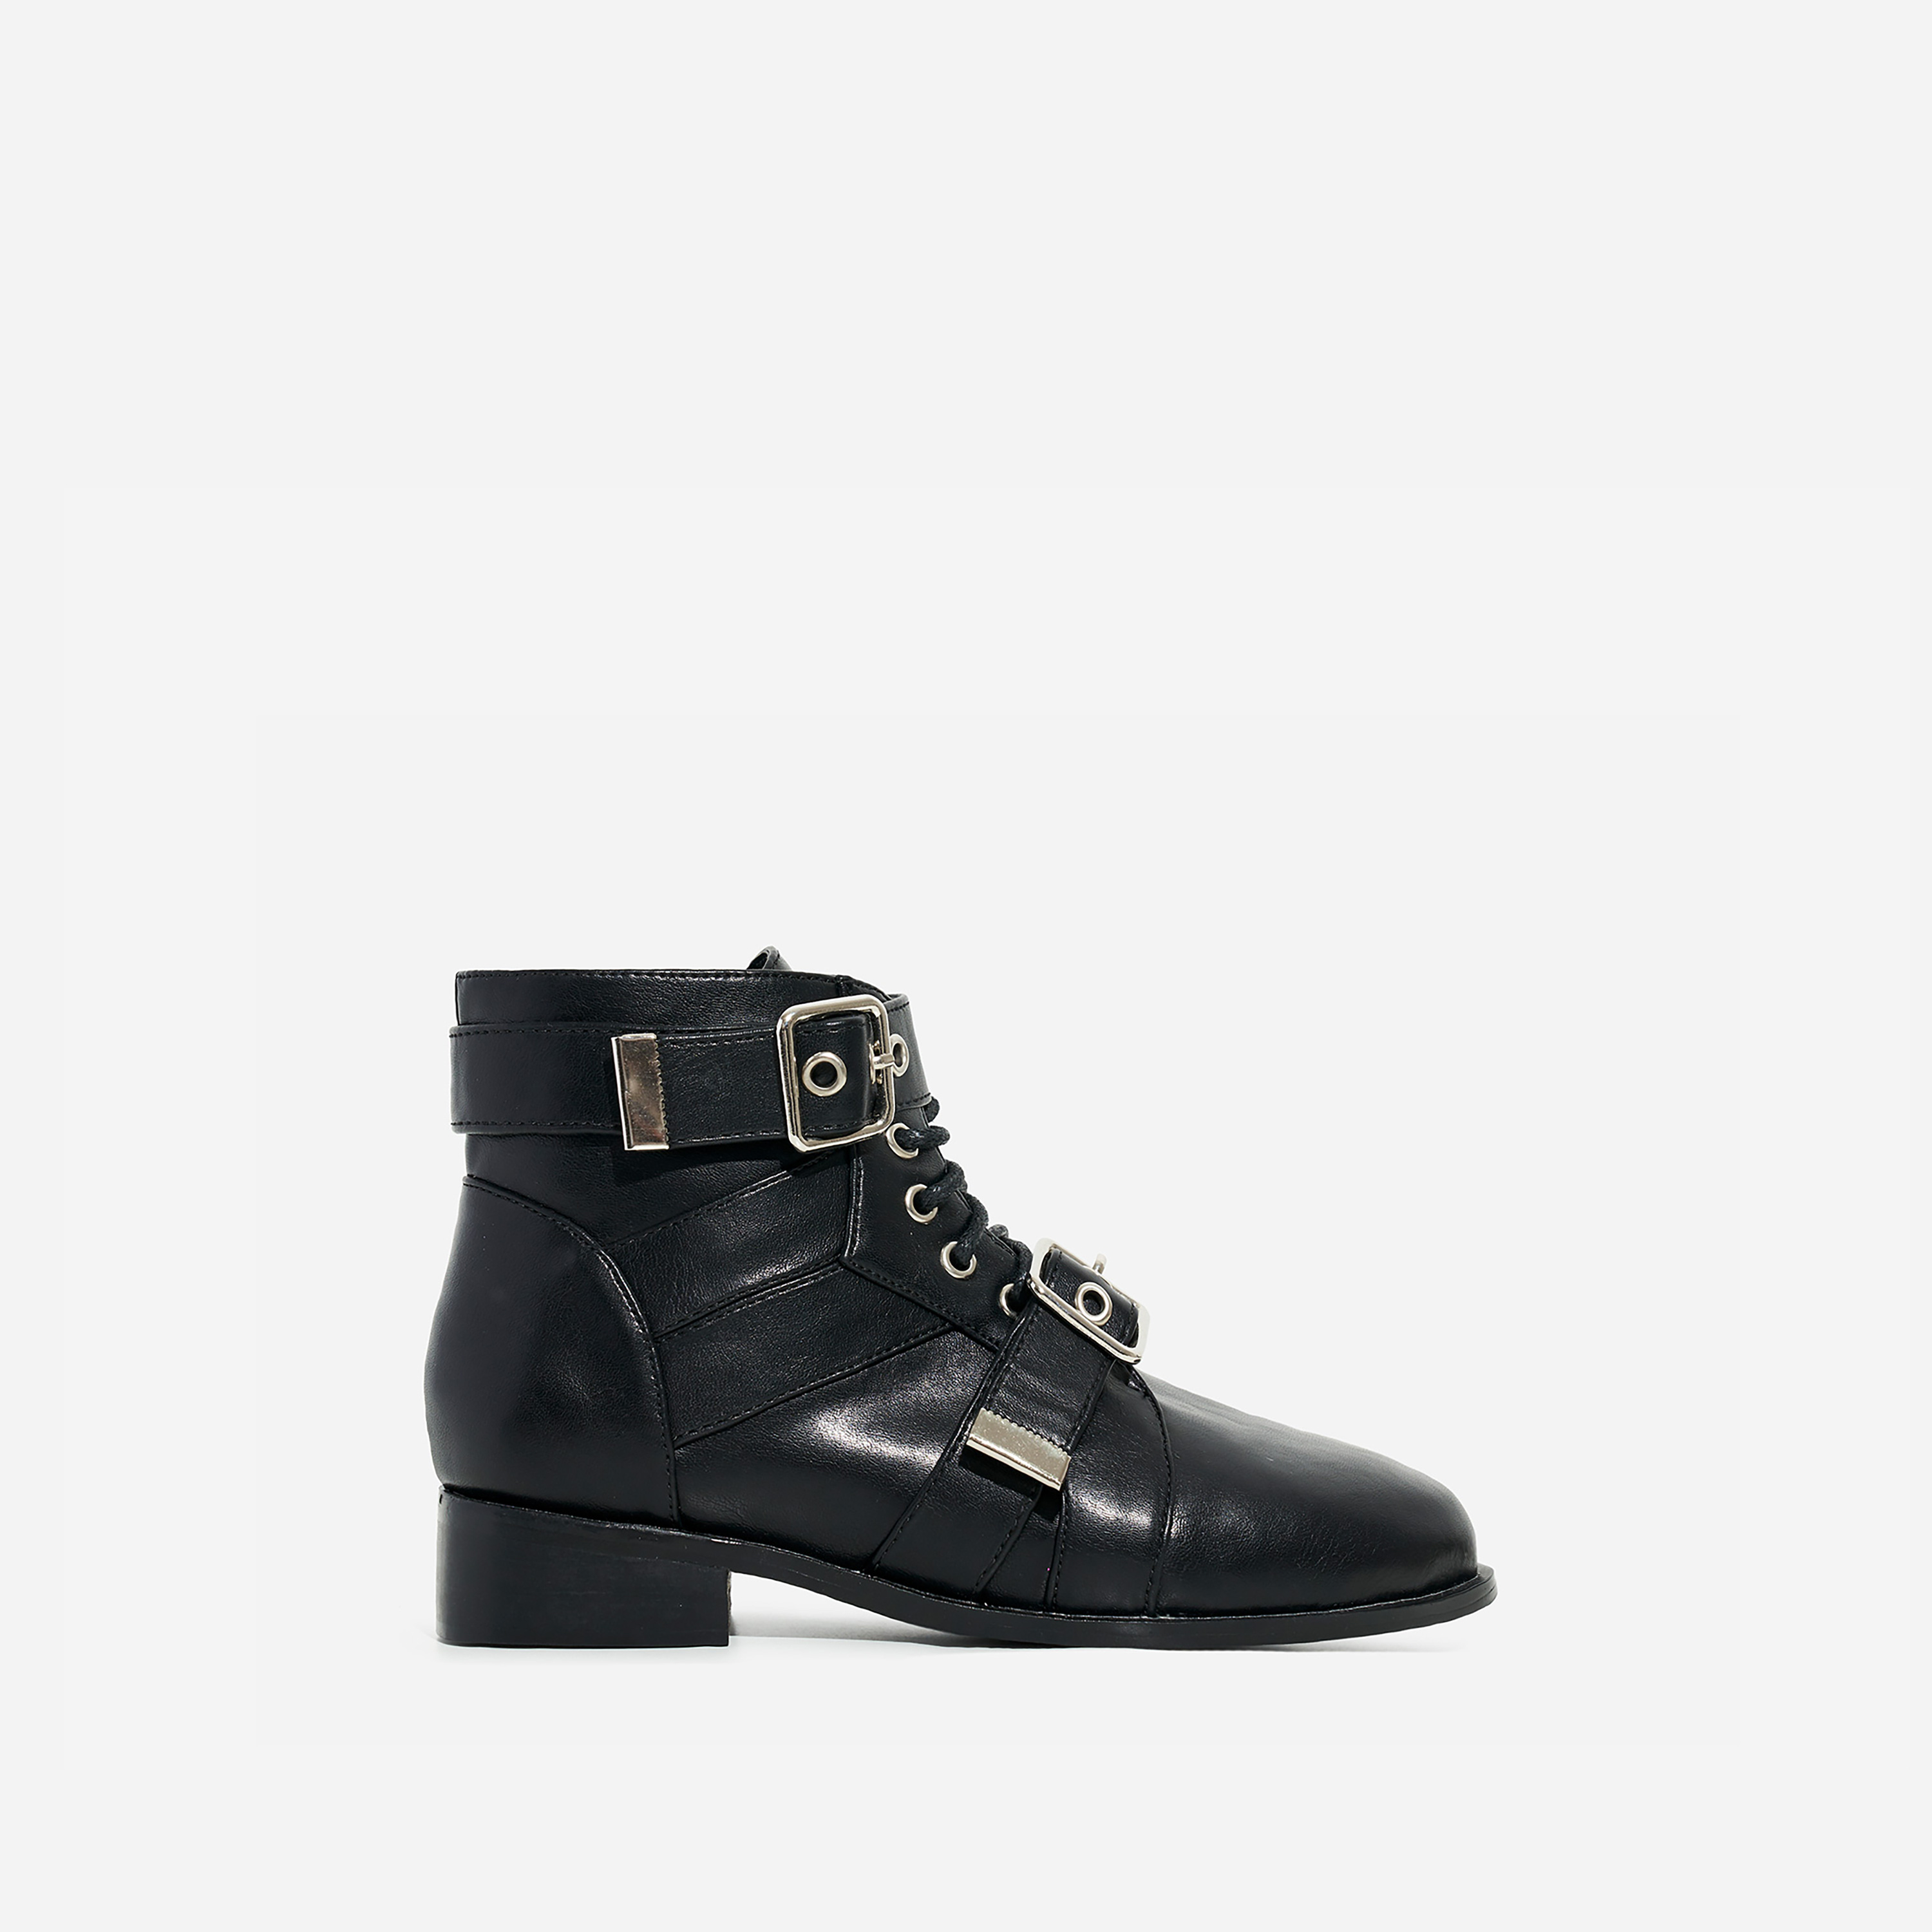 Howdy Girl's Buckle Detail Lace Up Ankle Biker Boot In Black Faux Leather